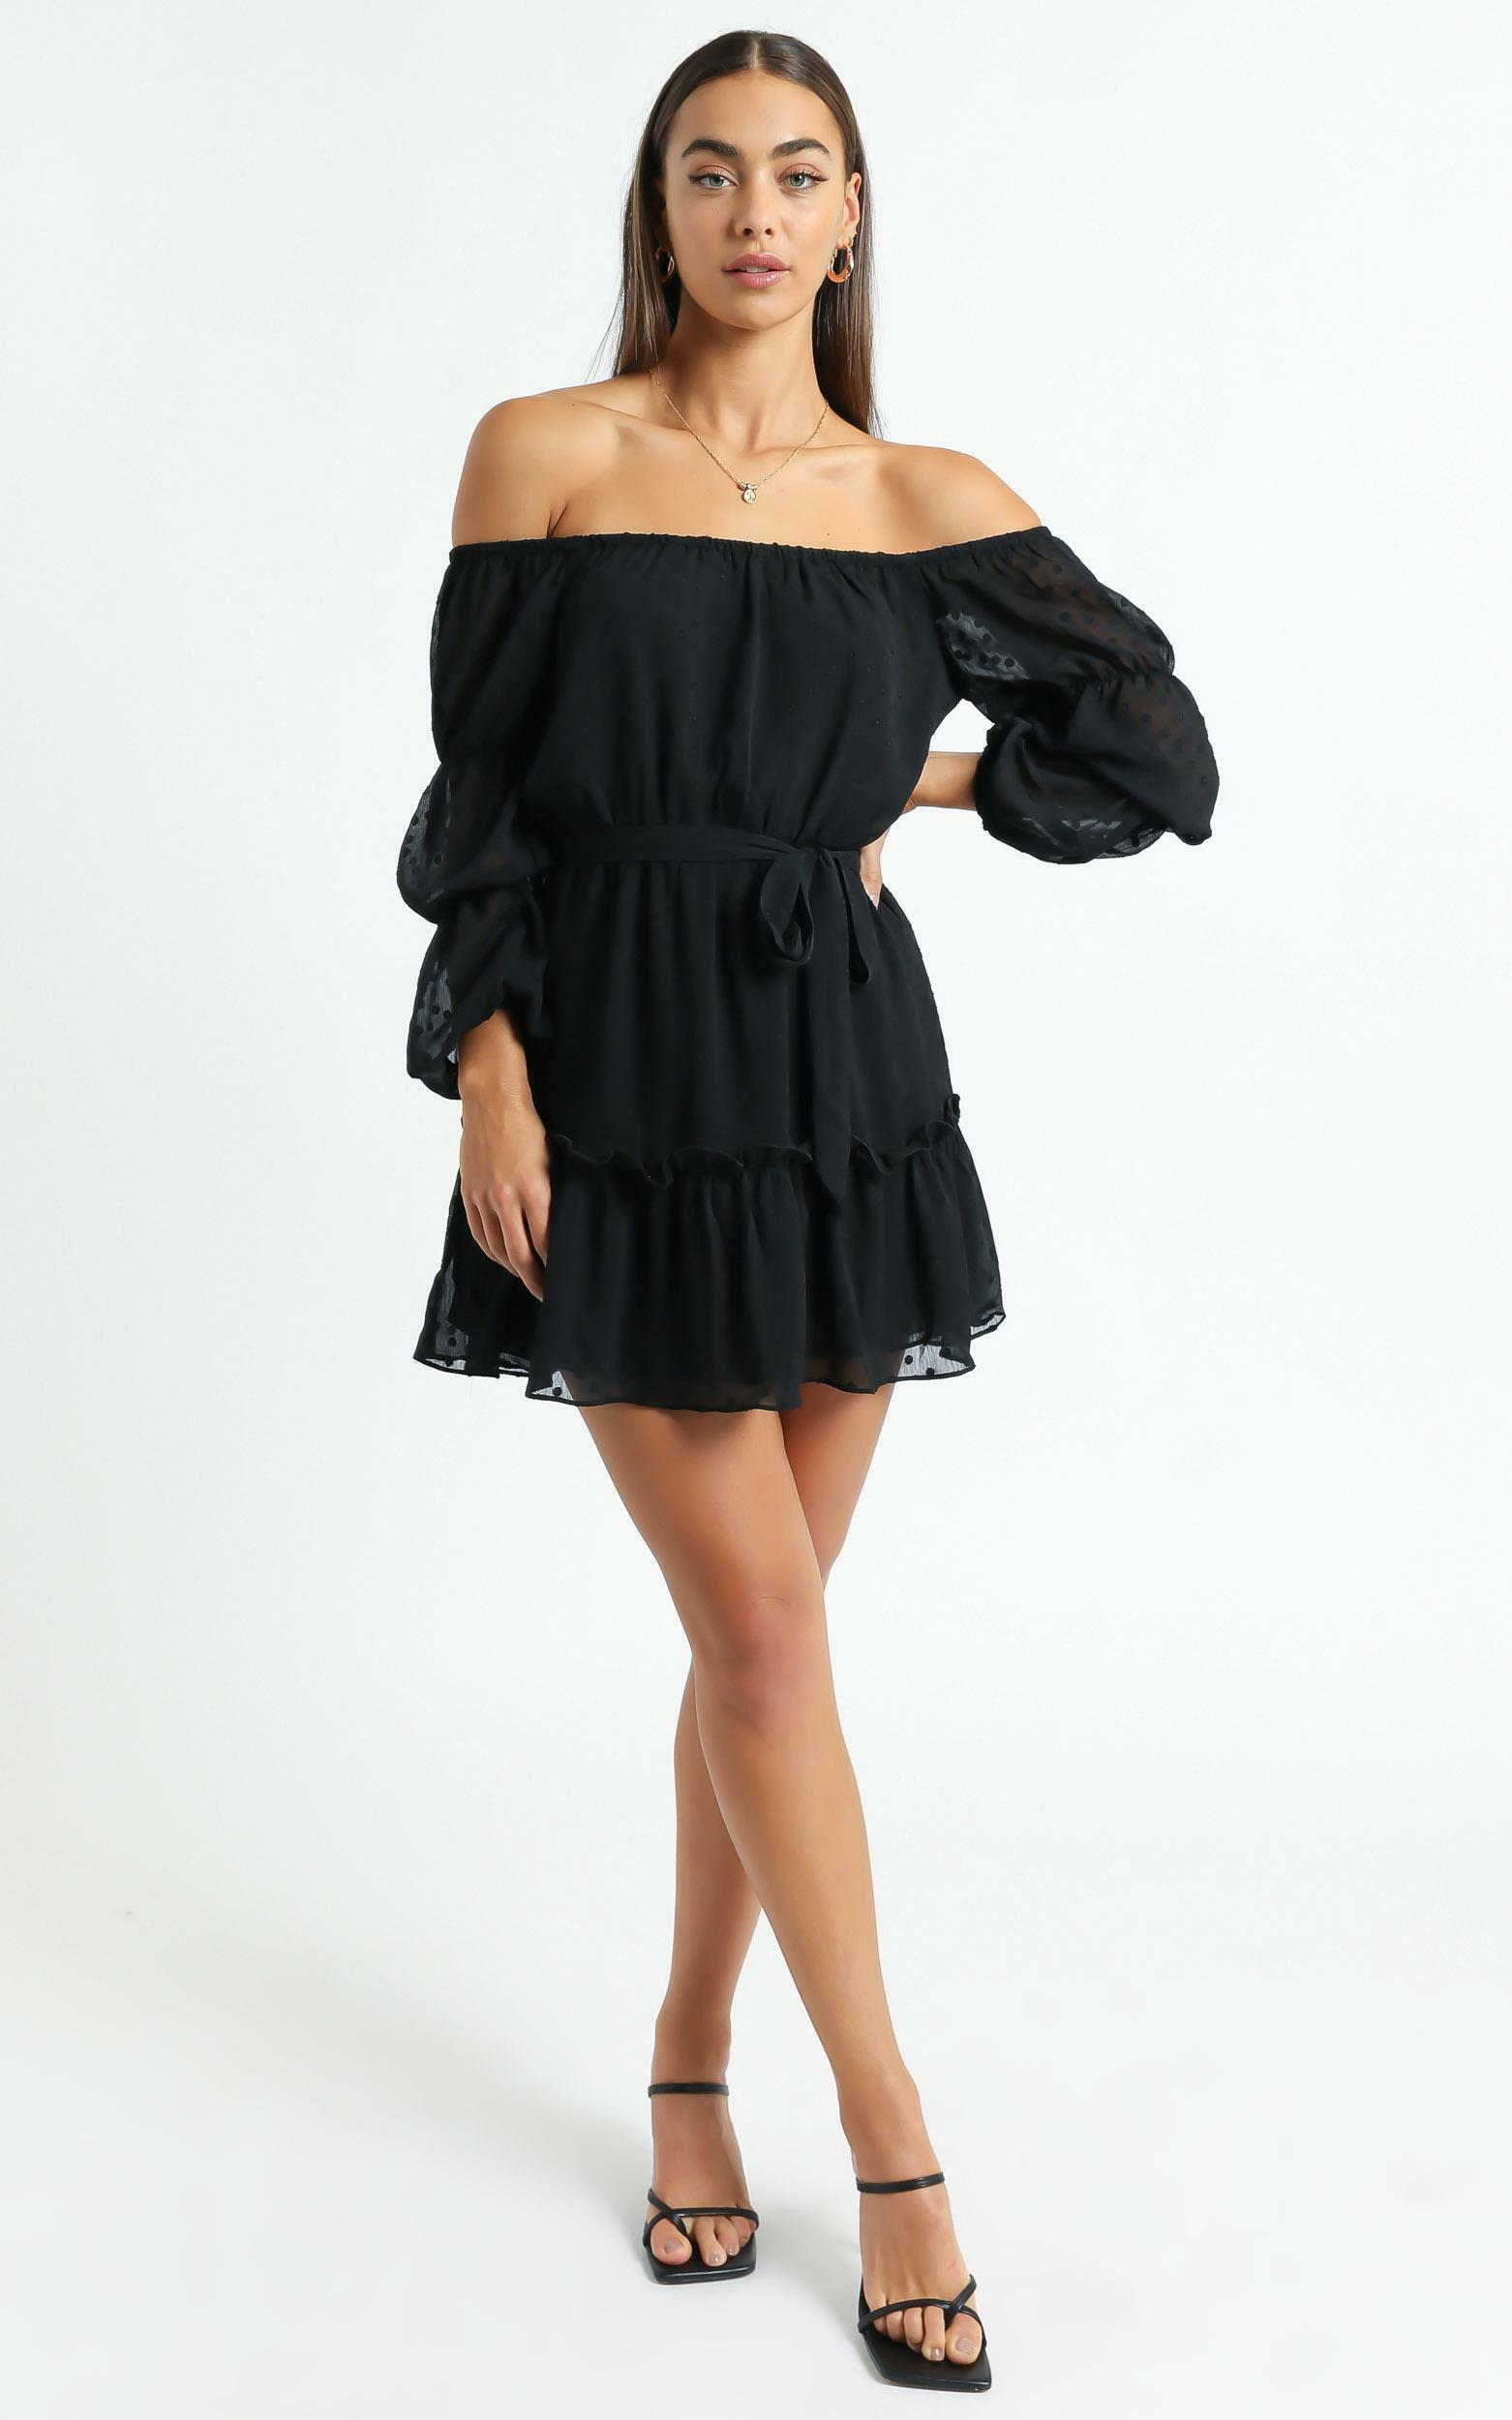 Party Life Dress in Black - 6 (XS), Black, hi-res image number null